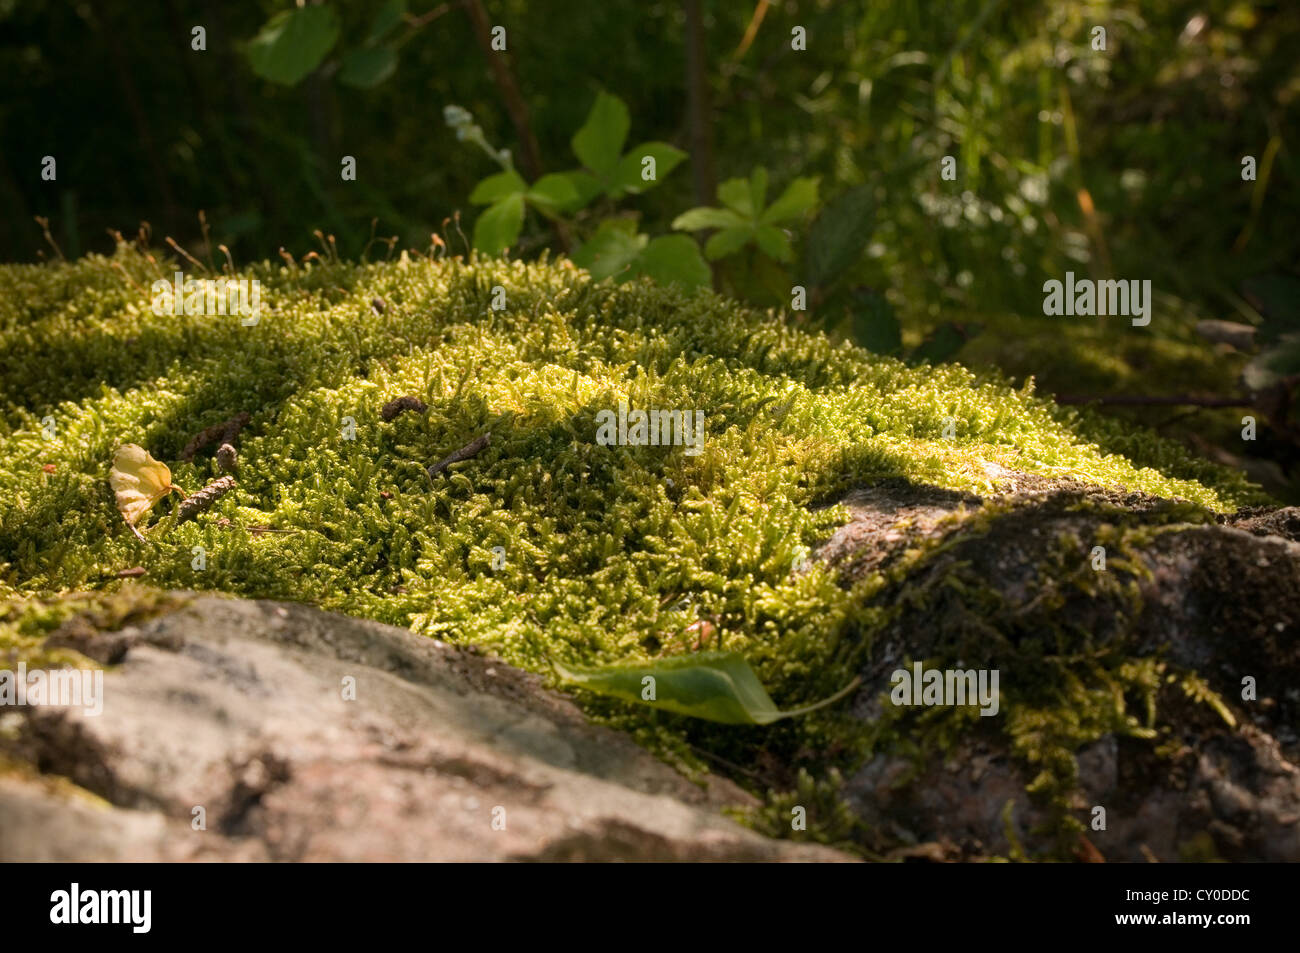 moss growing on a rock rolling stone gathers no mosses forest floor - Stock Image